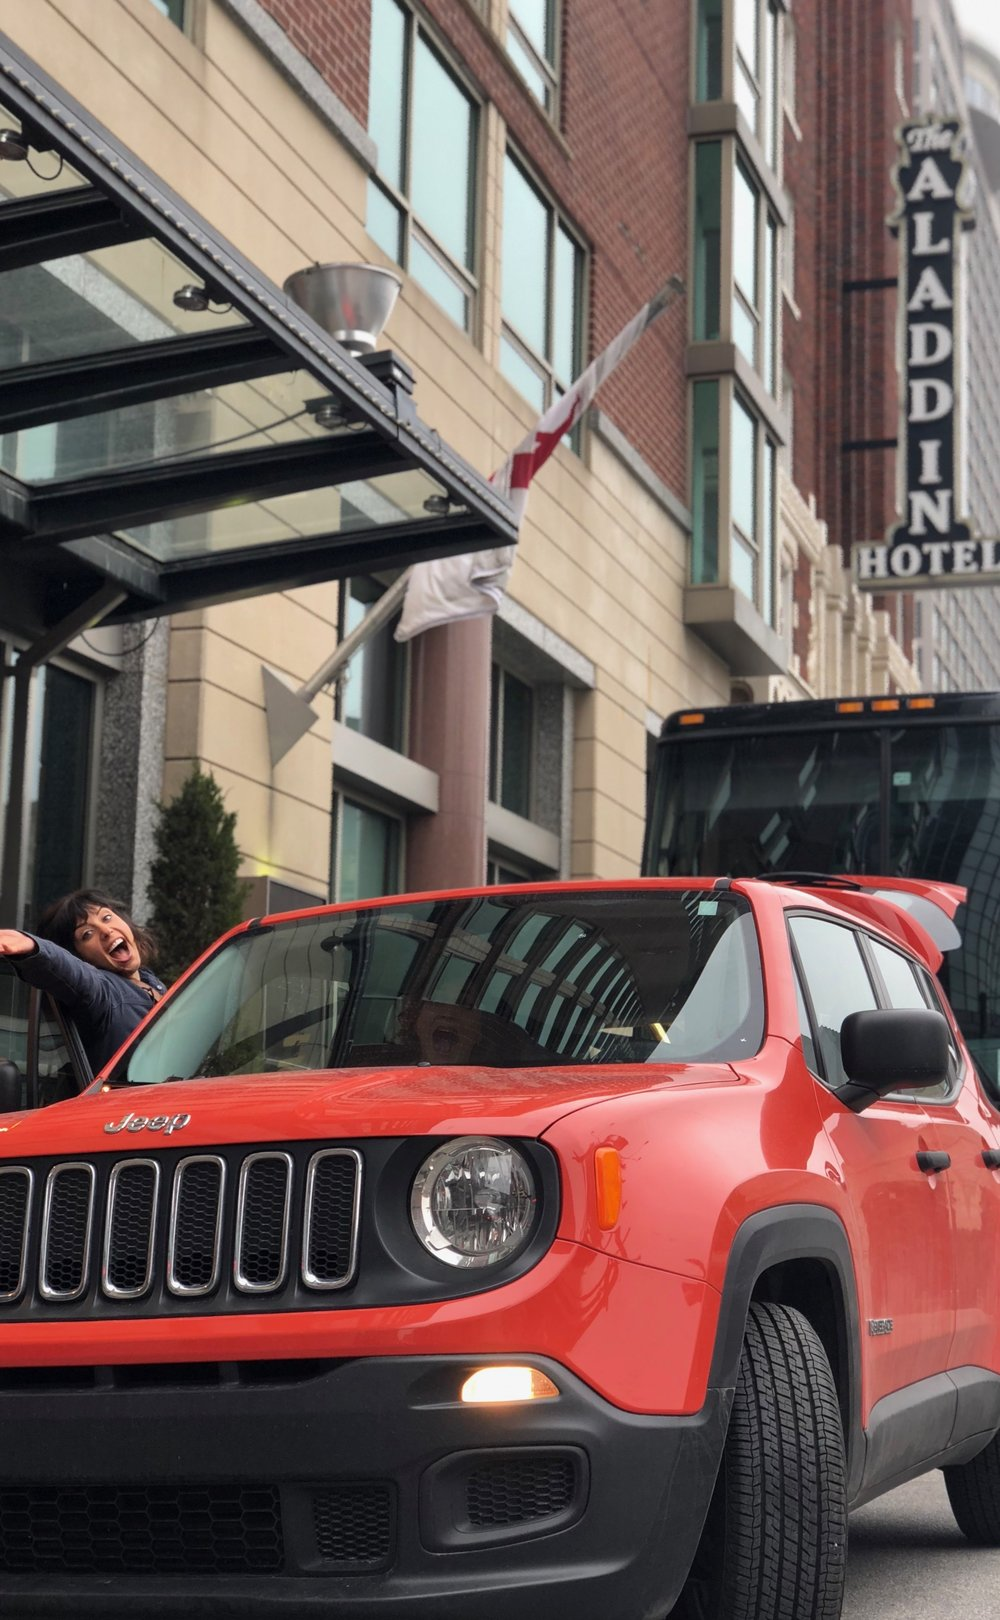 Allison and April were more than ready to go explore KCMO in our Rescue Renegade.